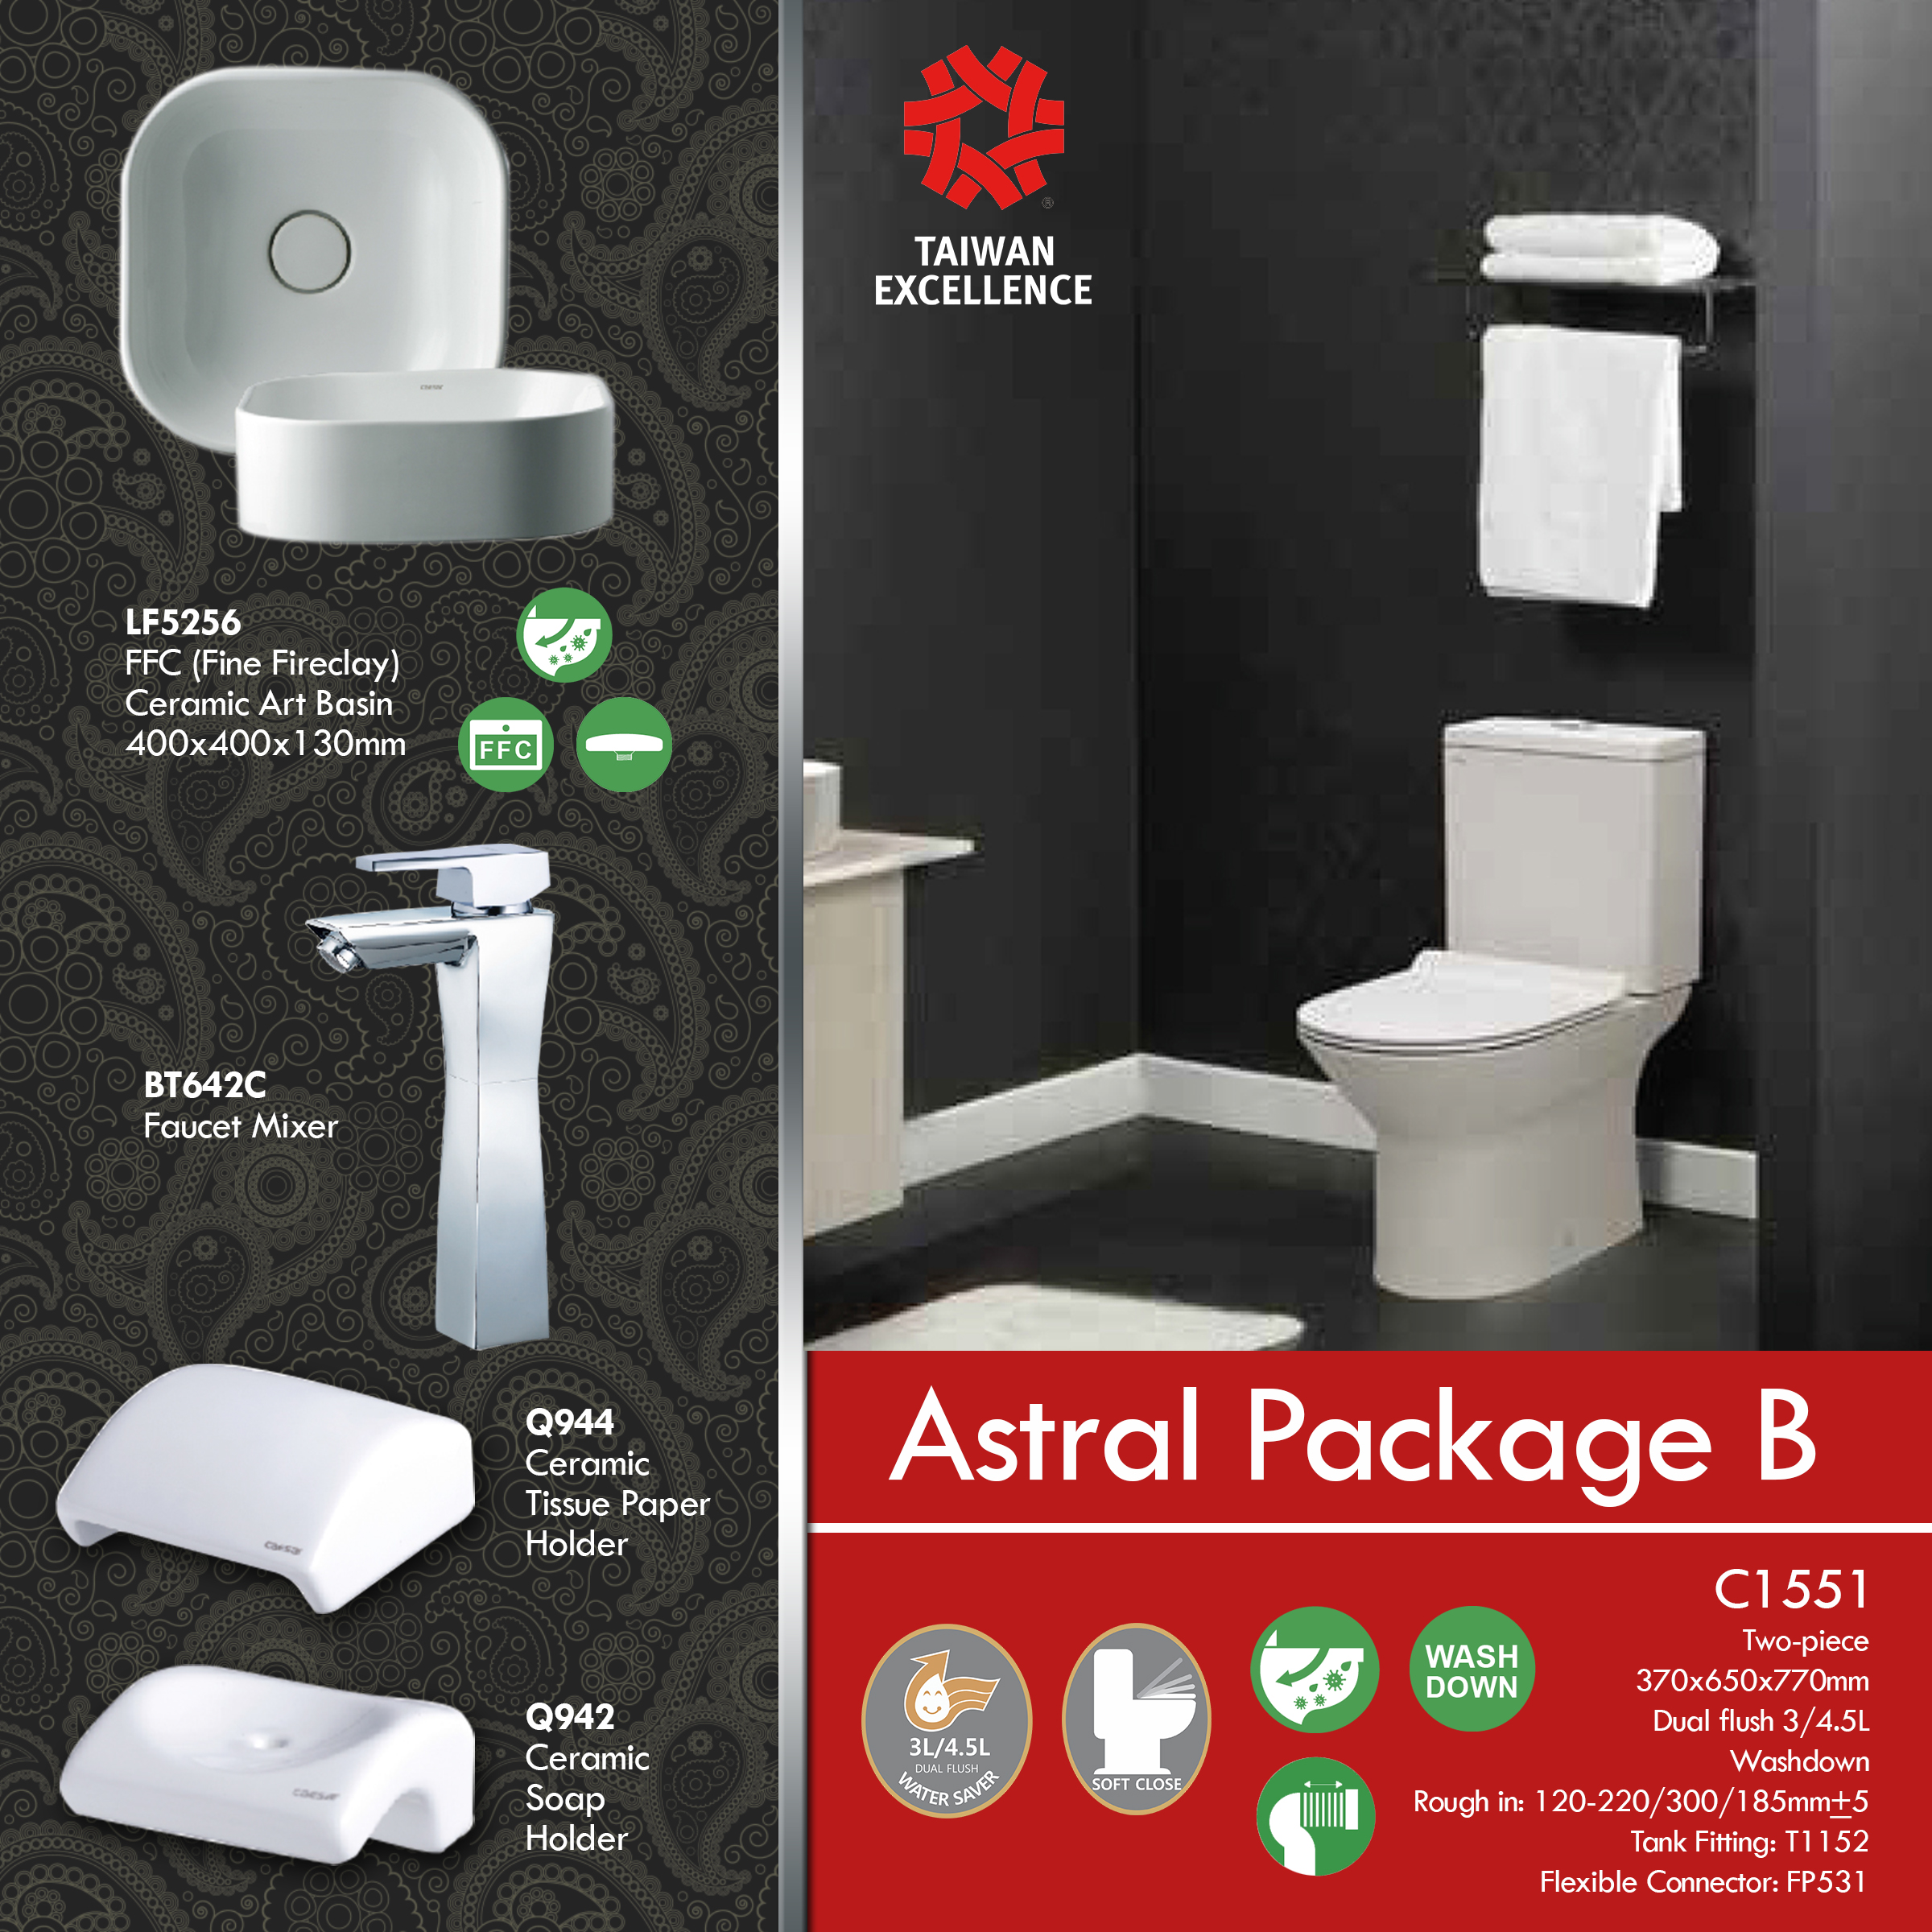 ASTRAL PACKAGE B